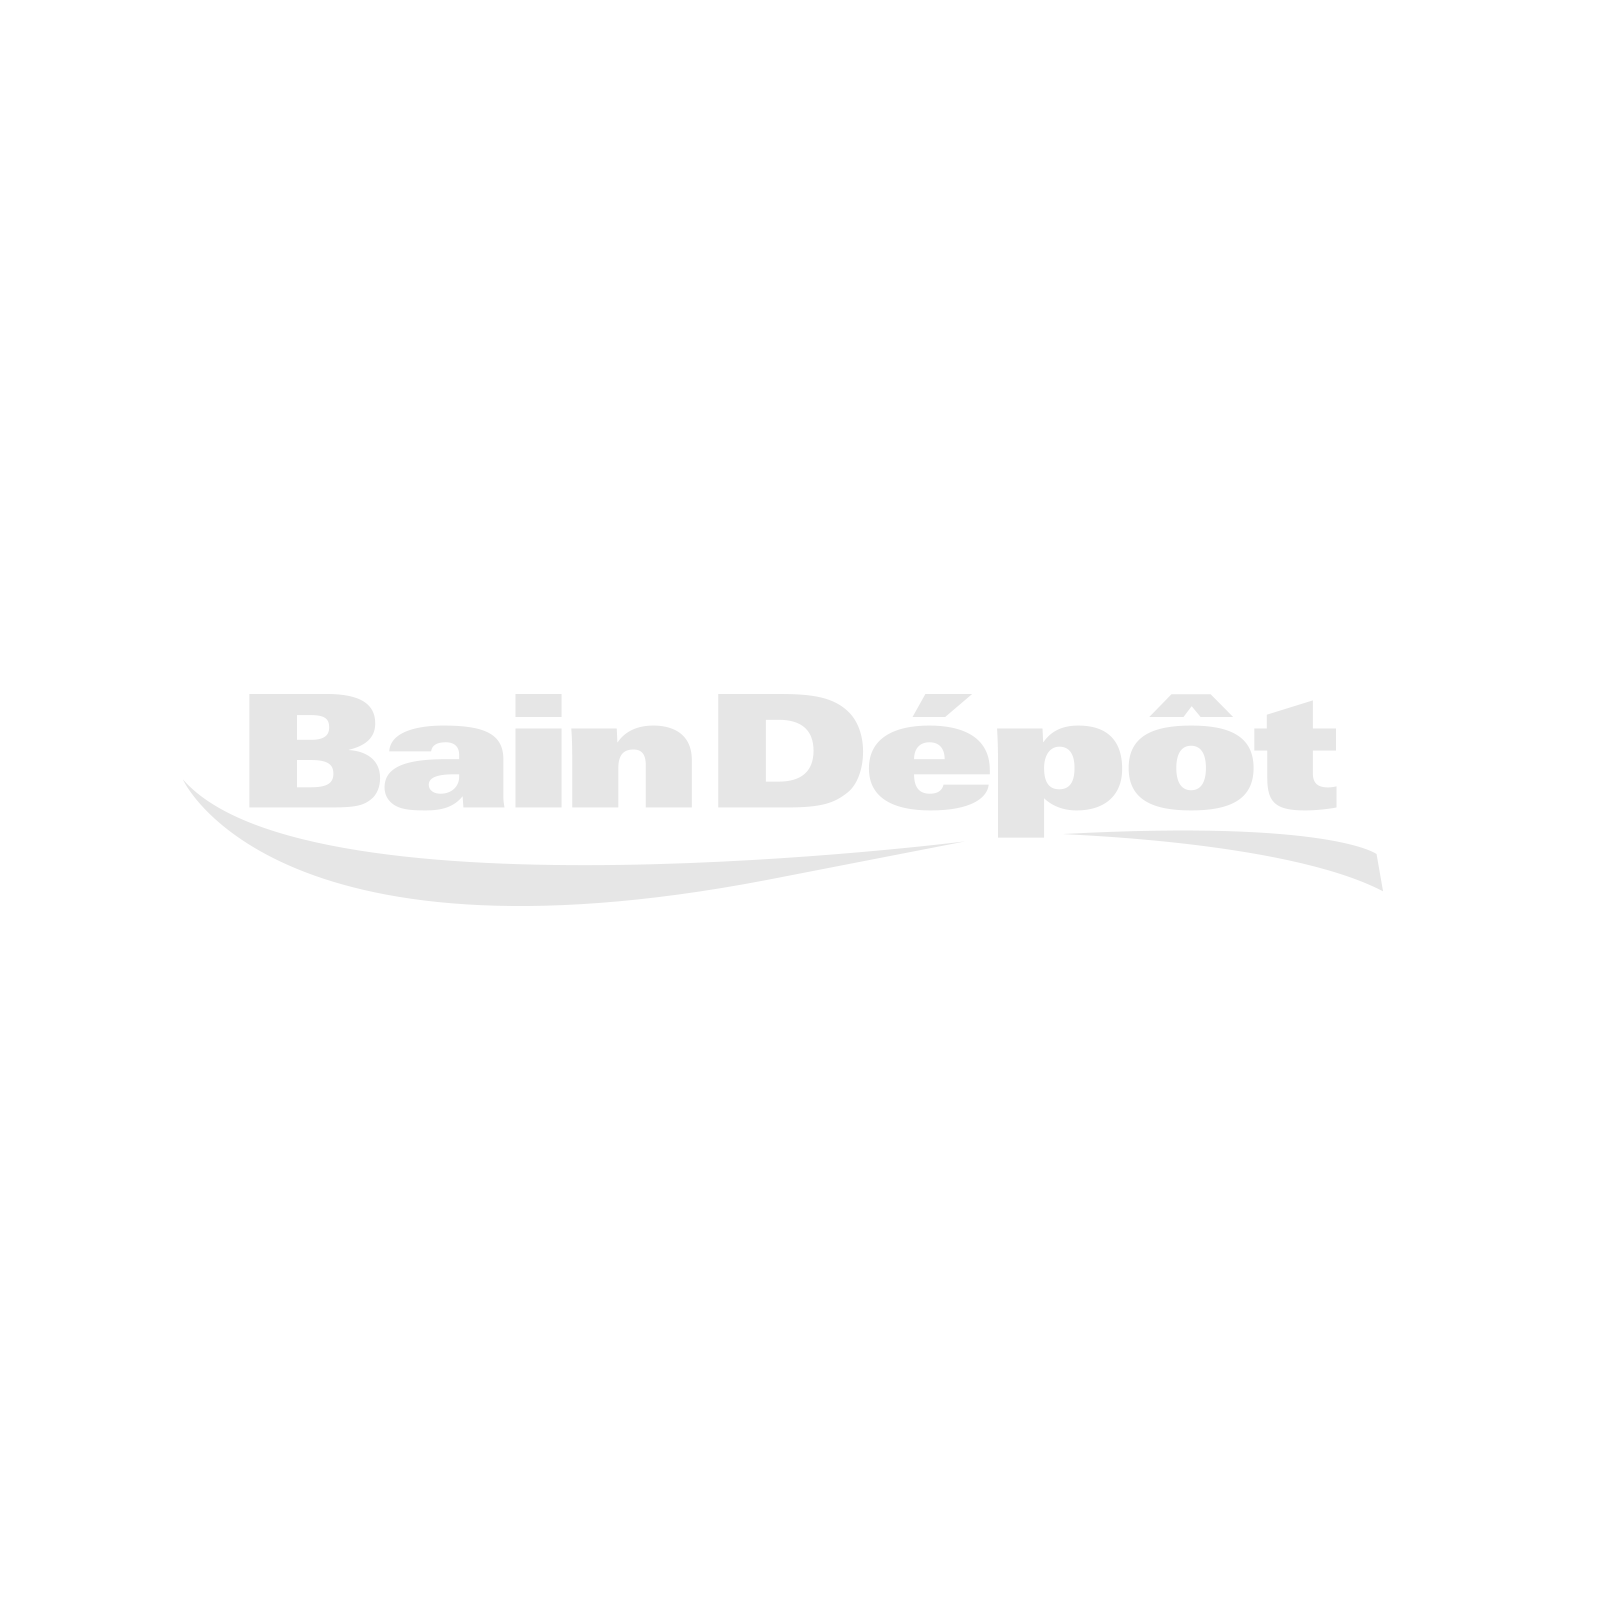 Robinet de lavabo monotrou au fini chrome avec drain pop-up